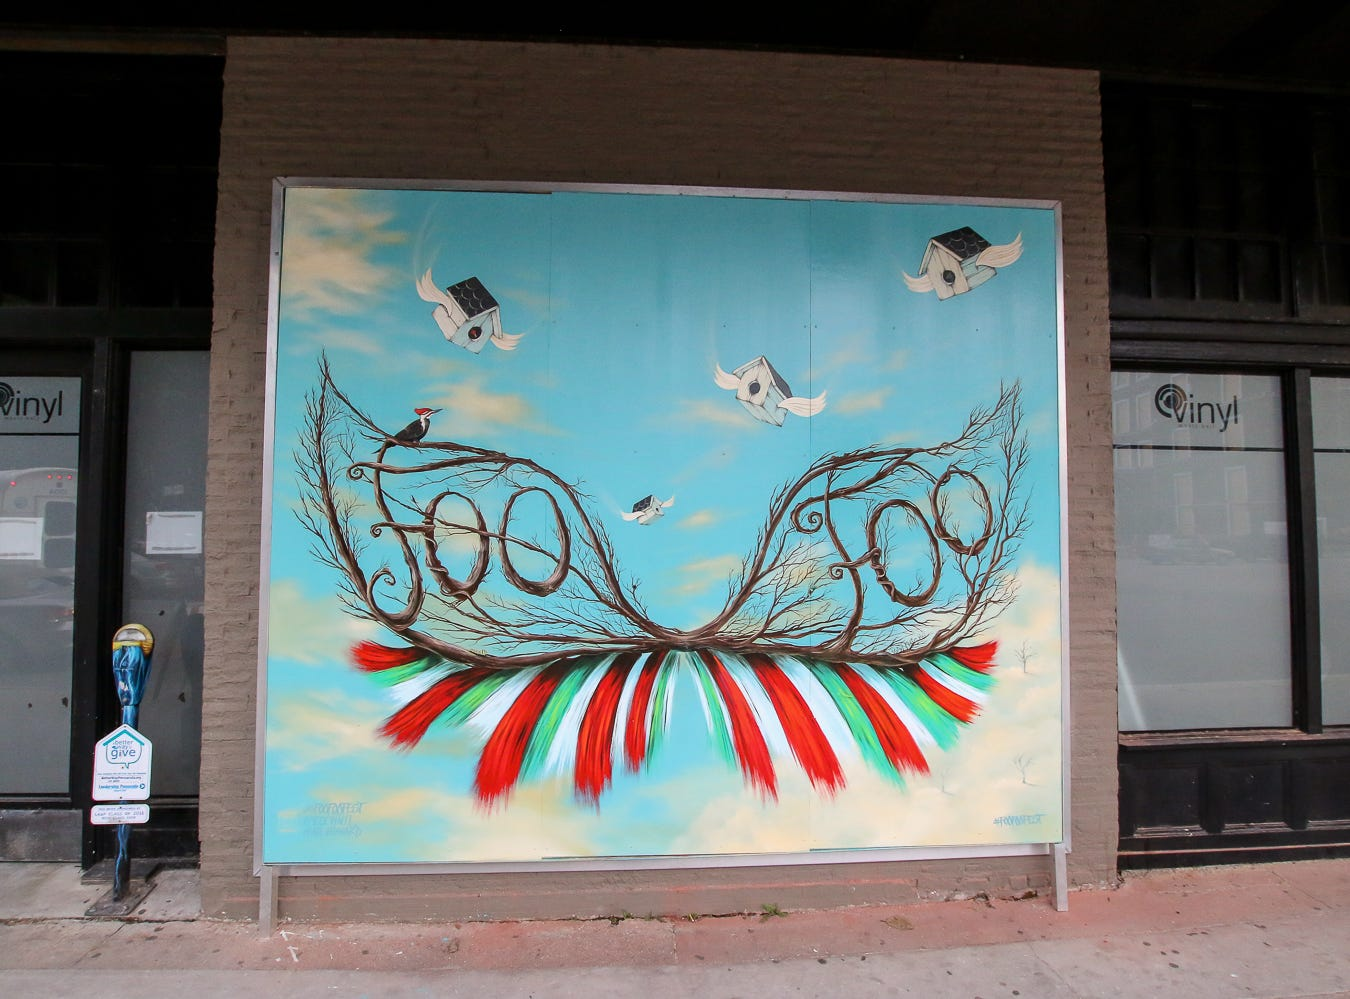 A new Foo Foo Festival mural is displayed on the side of Vinyl Music Hall during Gallery Night on Friday, August 17, 2018.